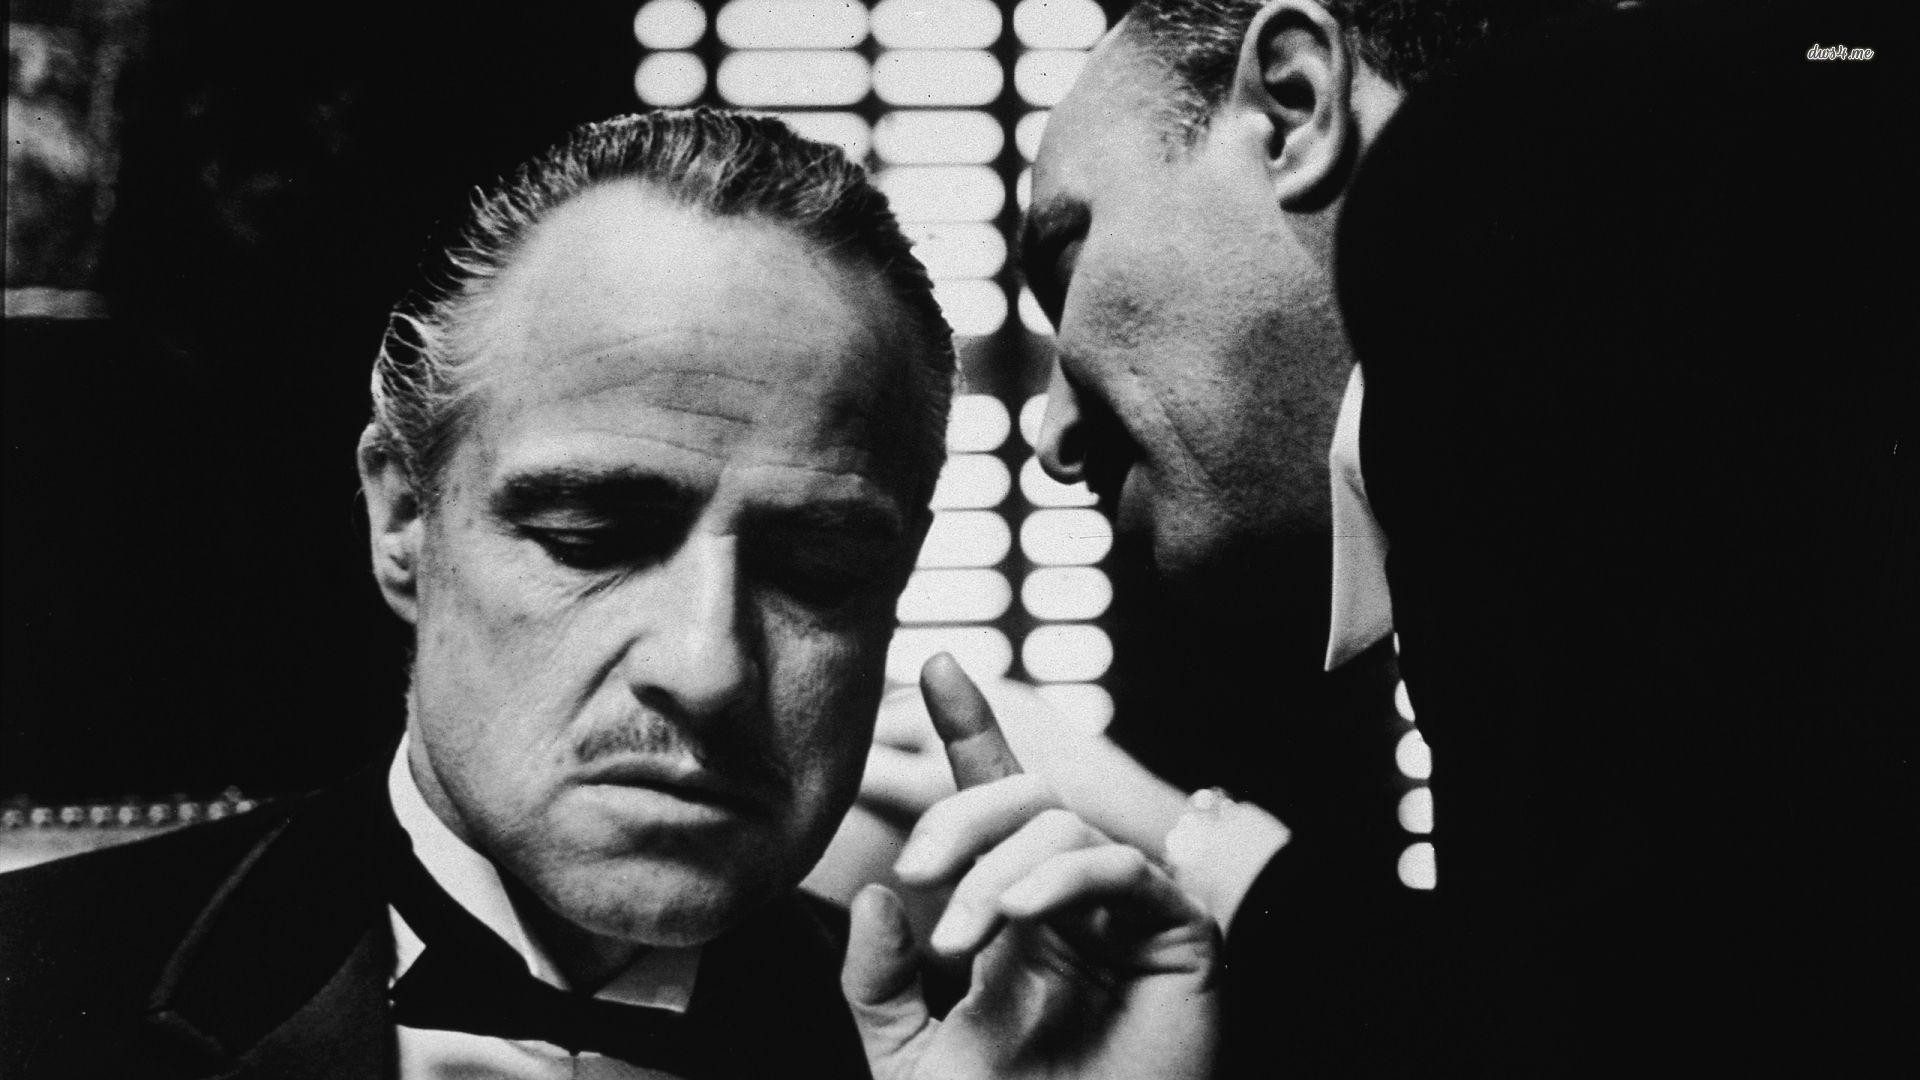 The Godfather Quotes Hd Wallpapers The Godfather Wallpapers - Godfather Wallpaper Hd - HD Wallpaper